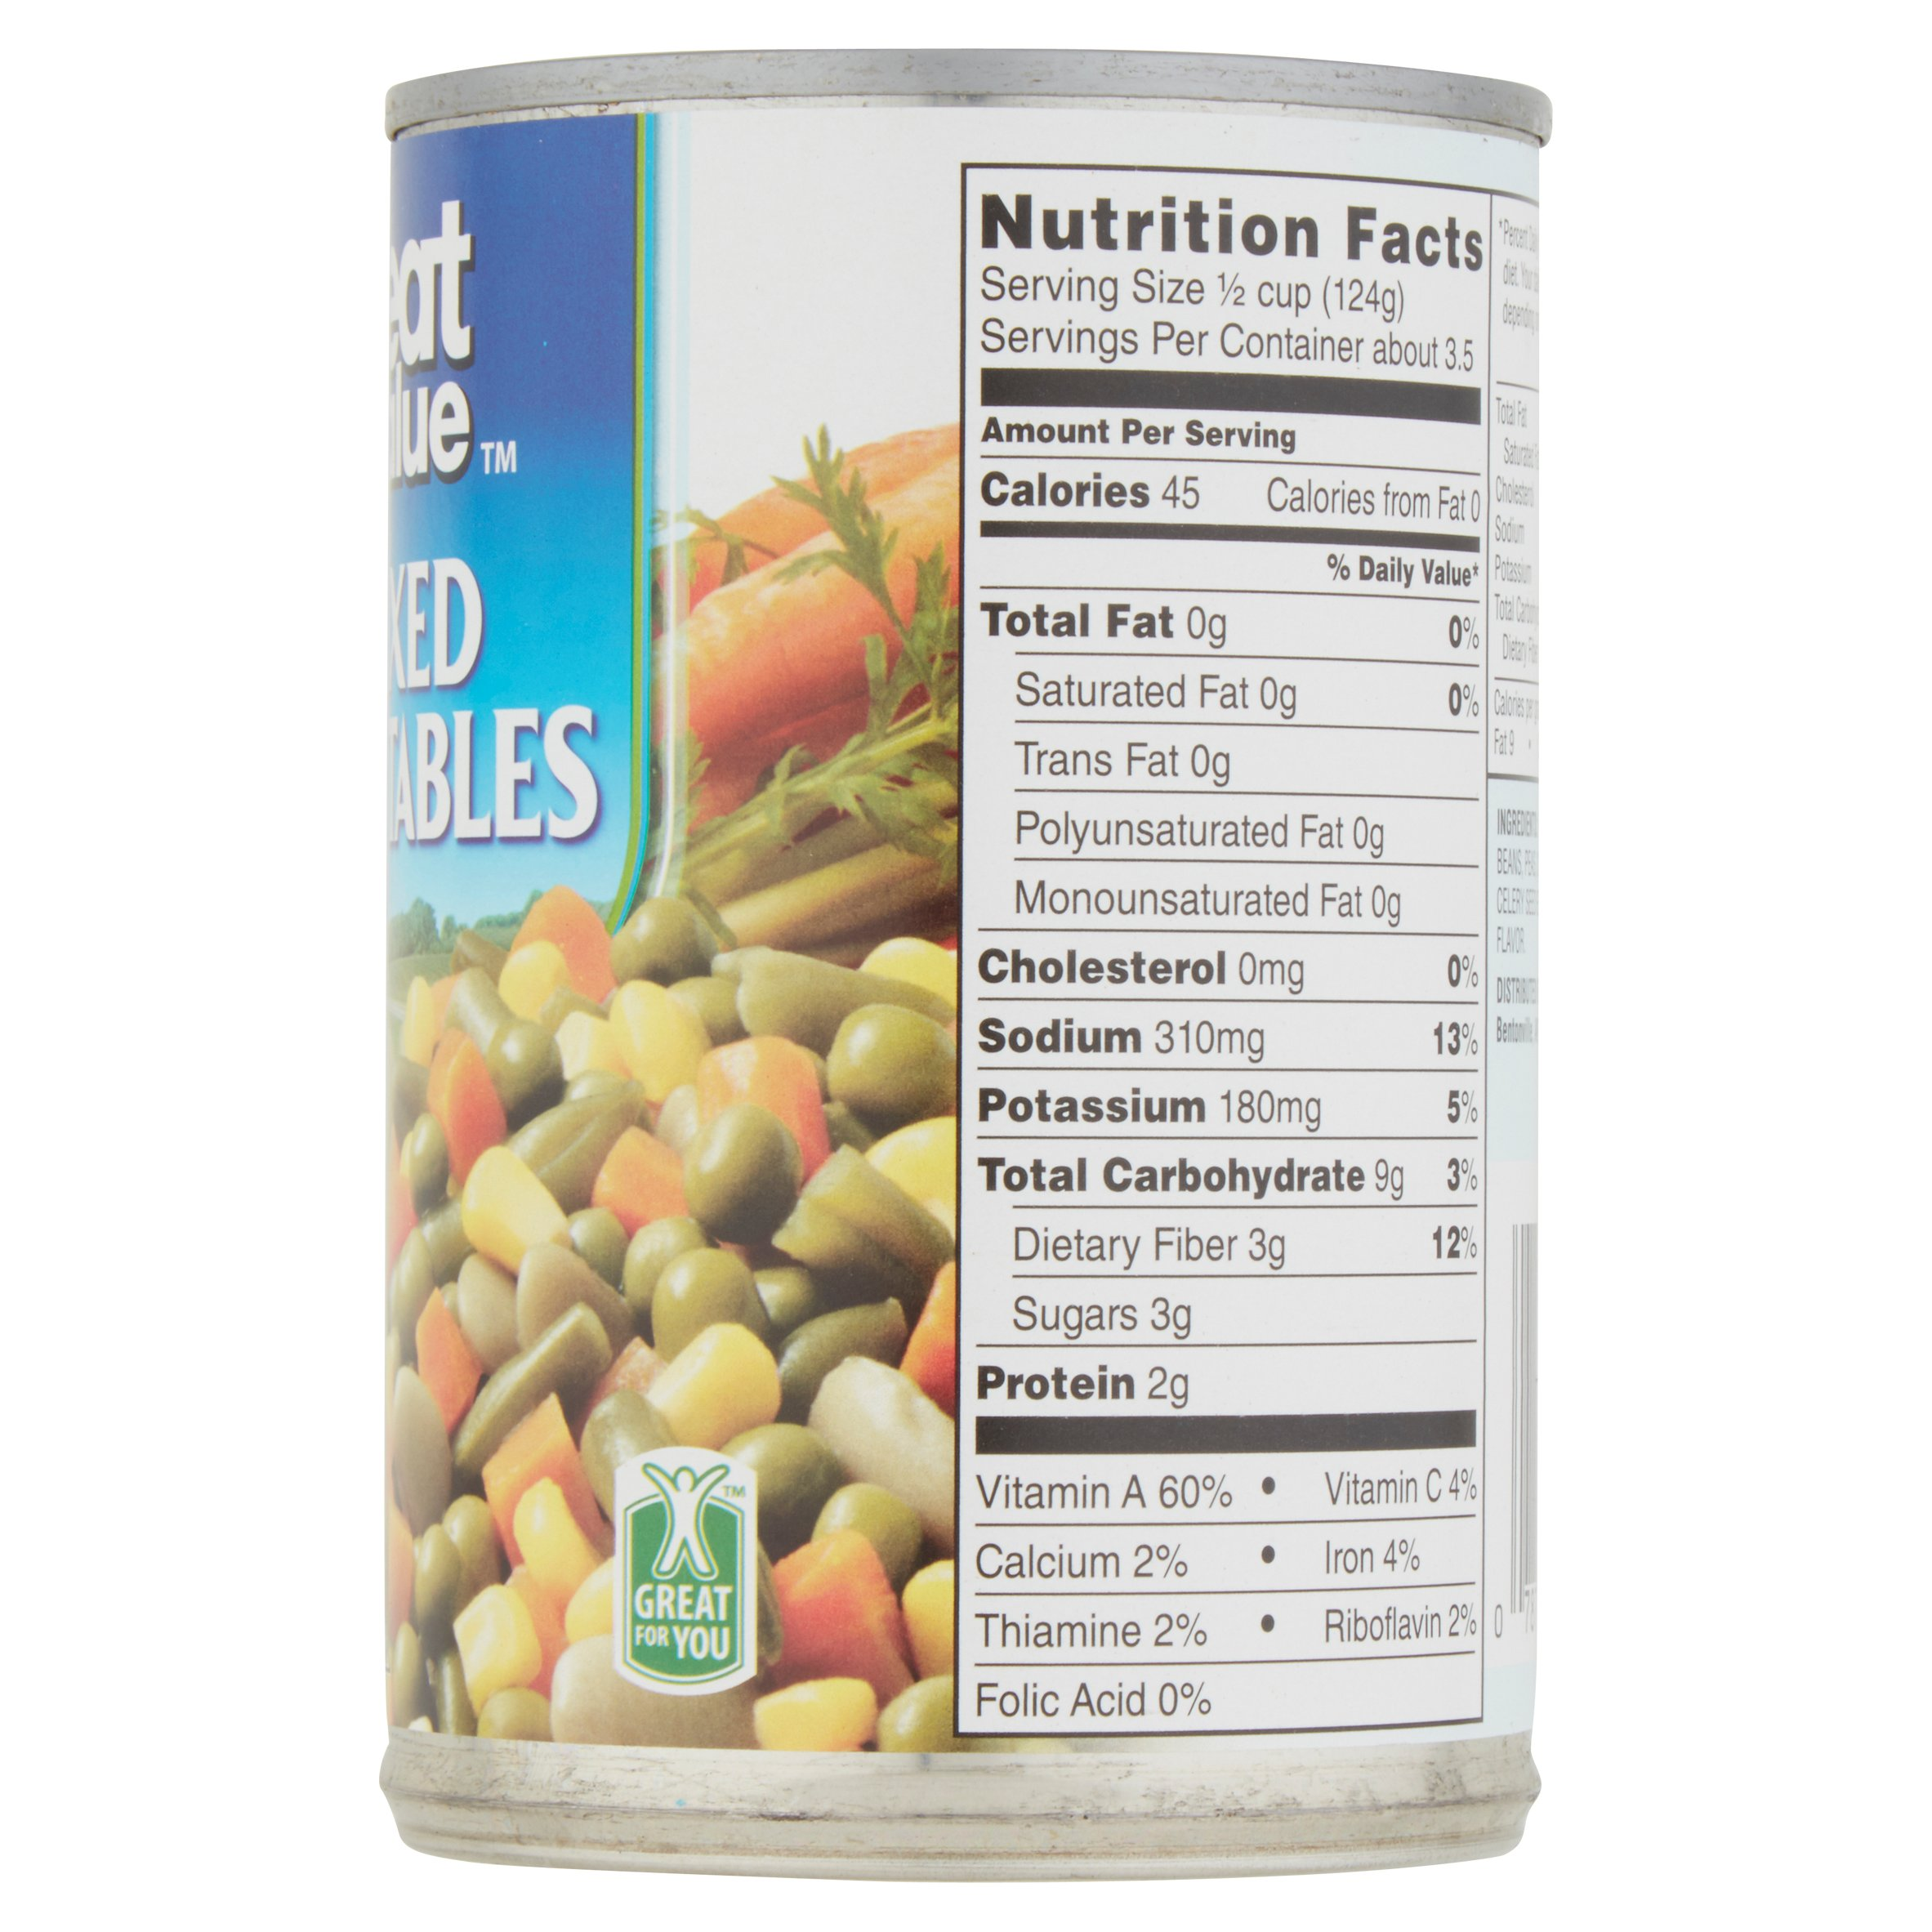 Canned Vegetable Nutrition